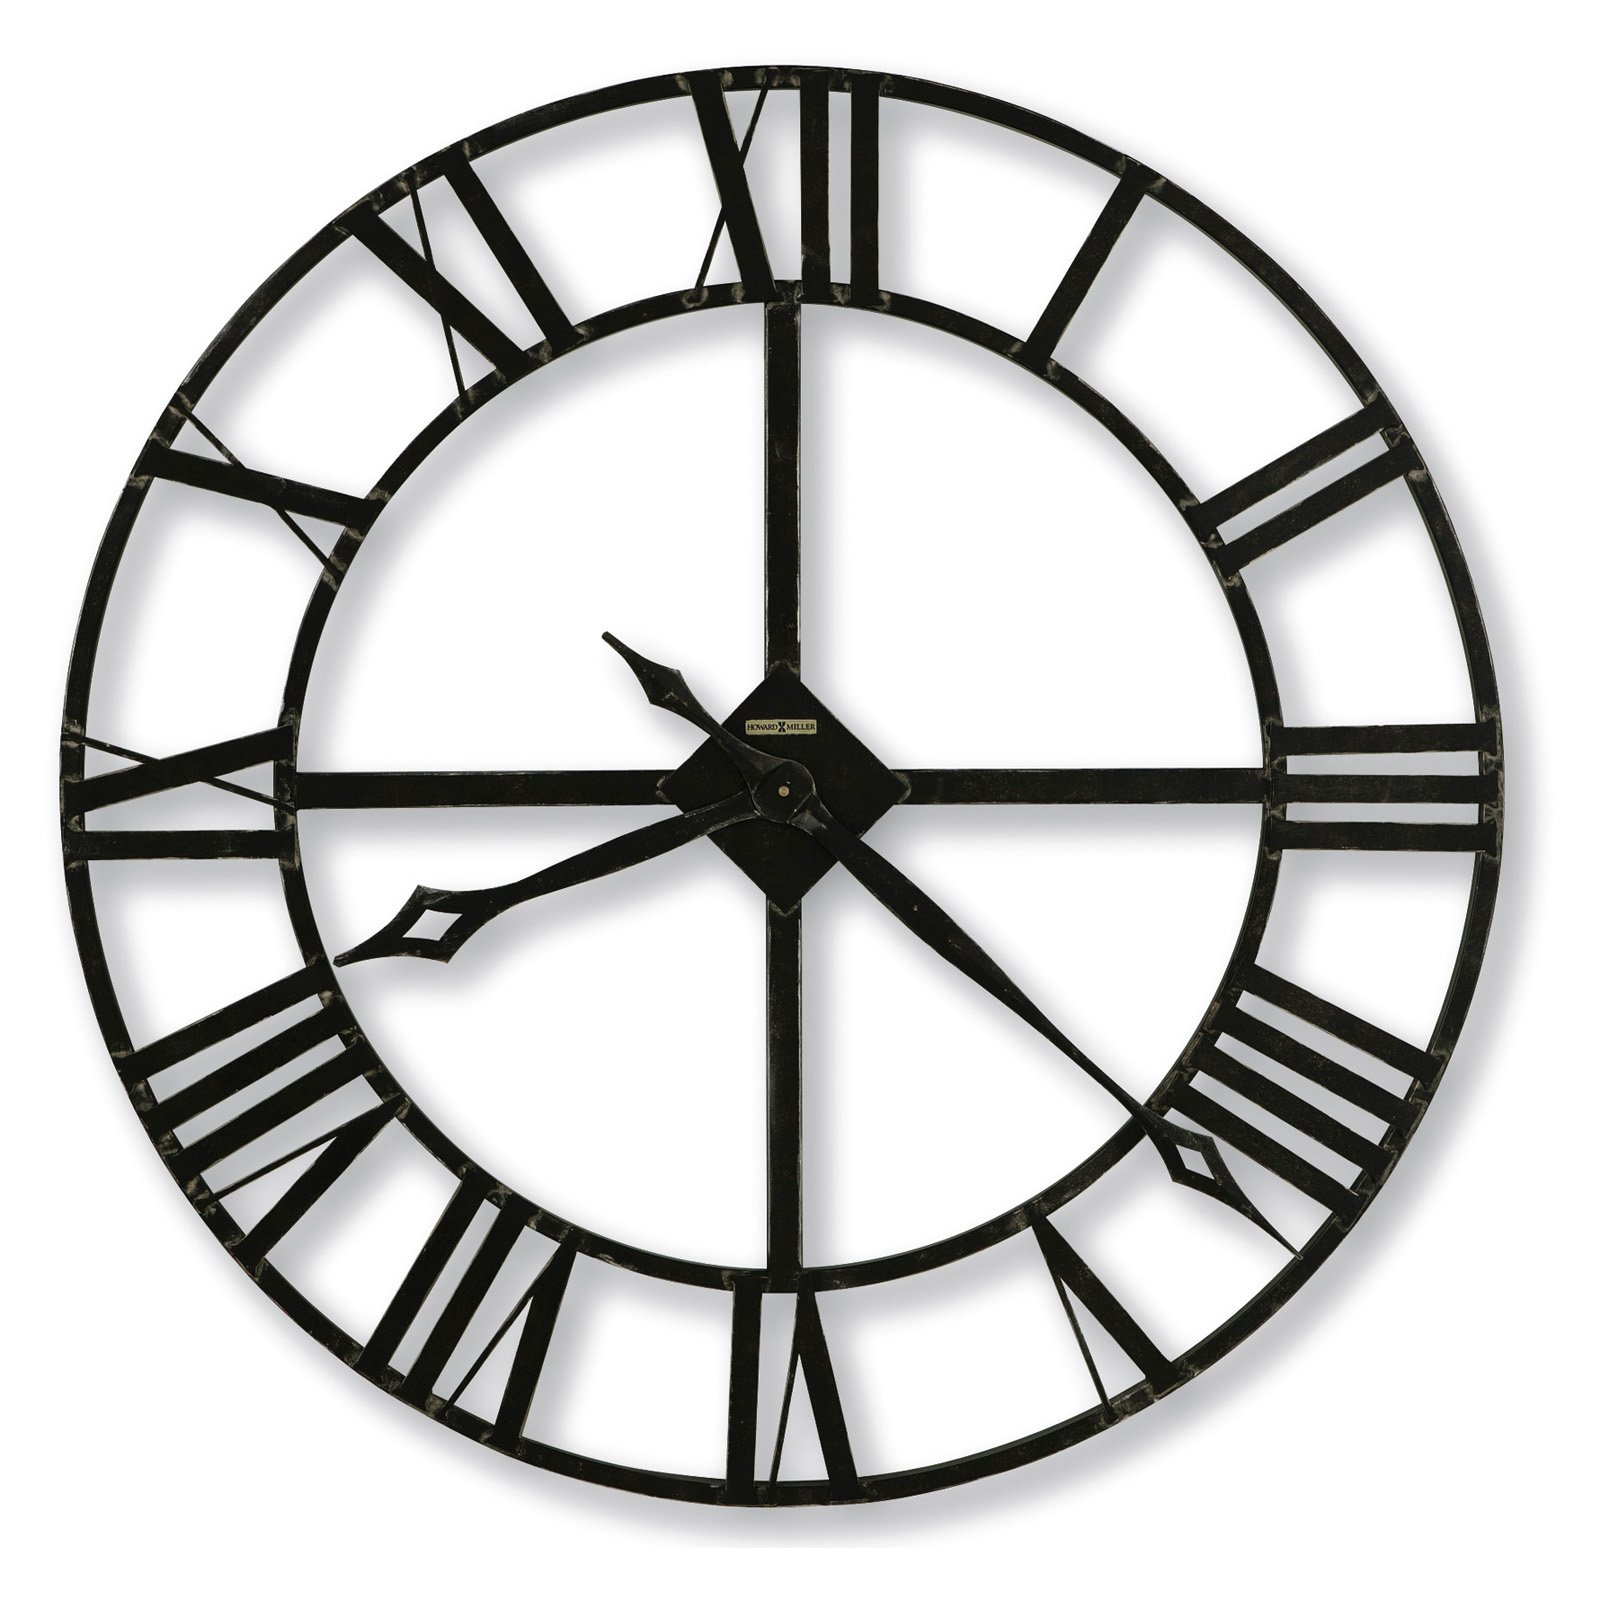 Howard Miller 625-423 Lacy II 14 in. Wall Clock by Howard Miller